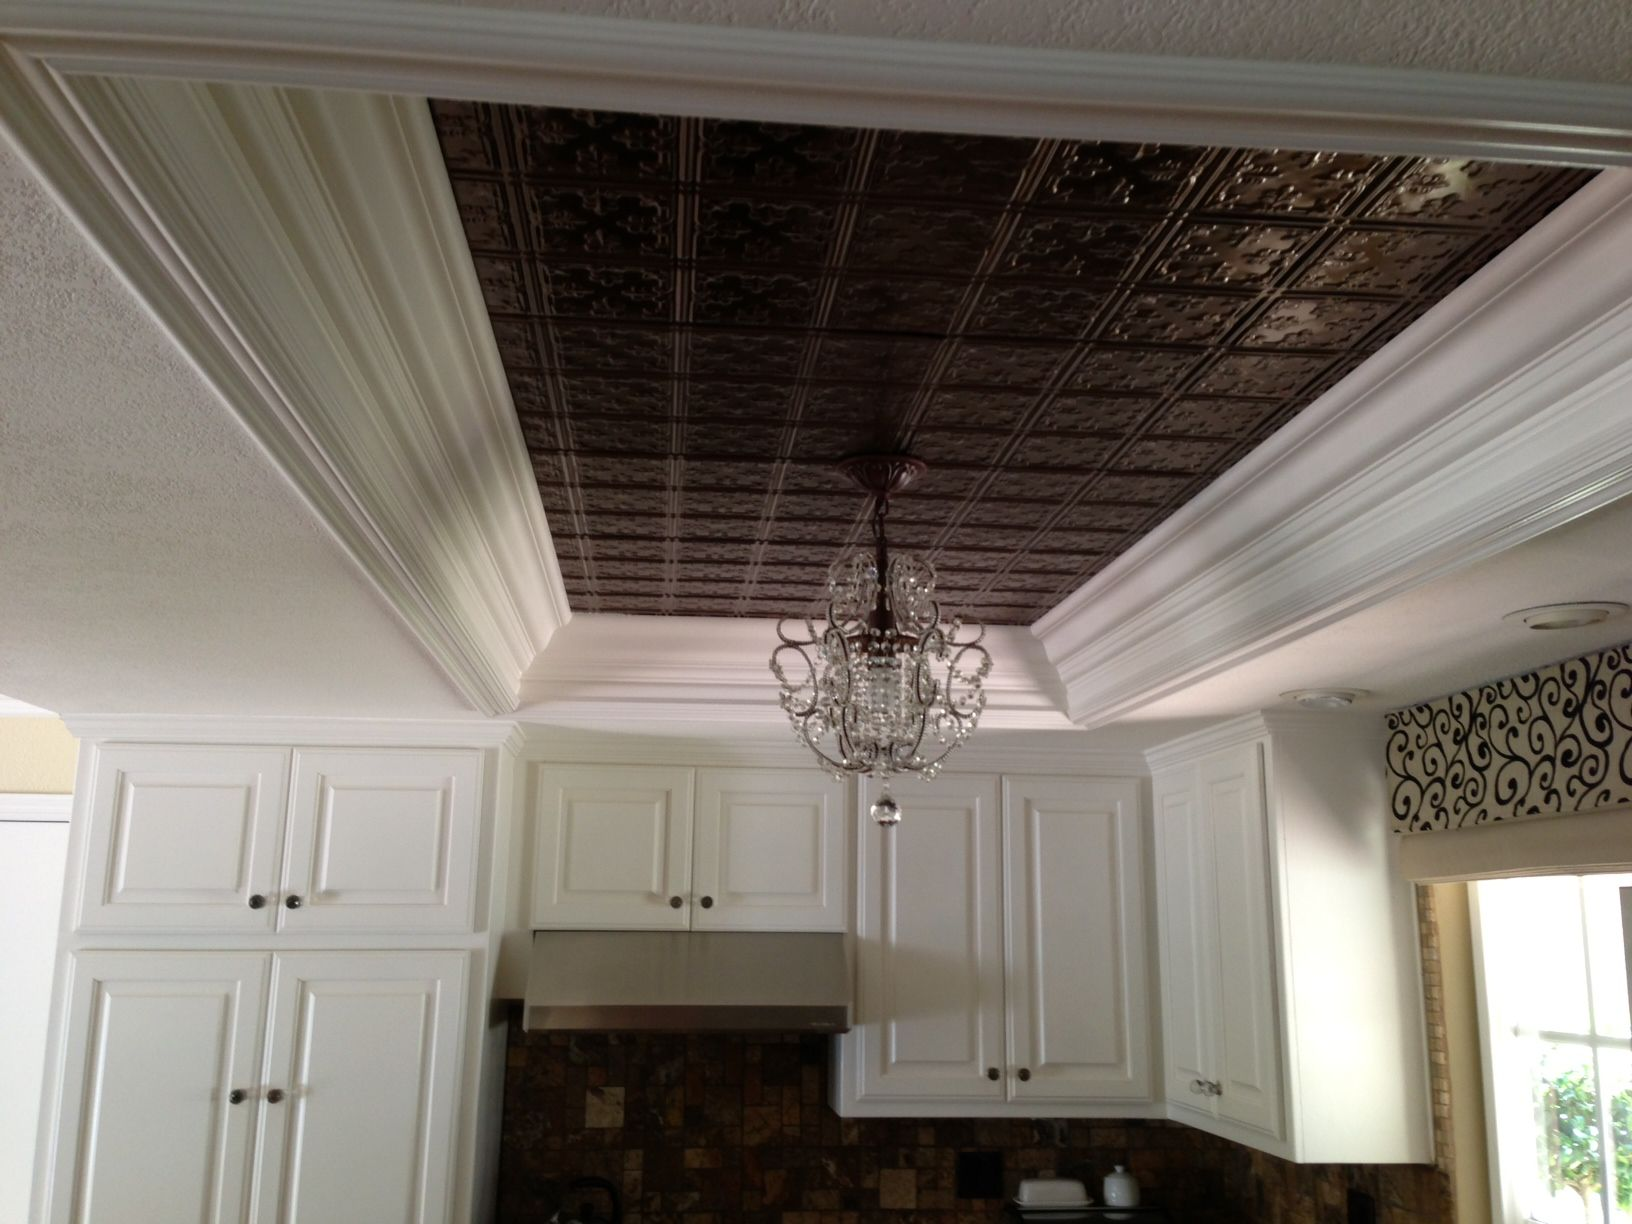 ceiling lights for kitchen kitchen ceiling tiles and hanging light replace dated fluorescent lighting